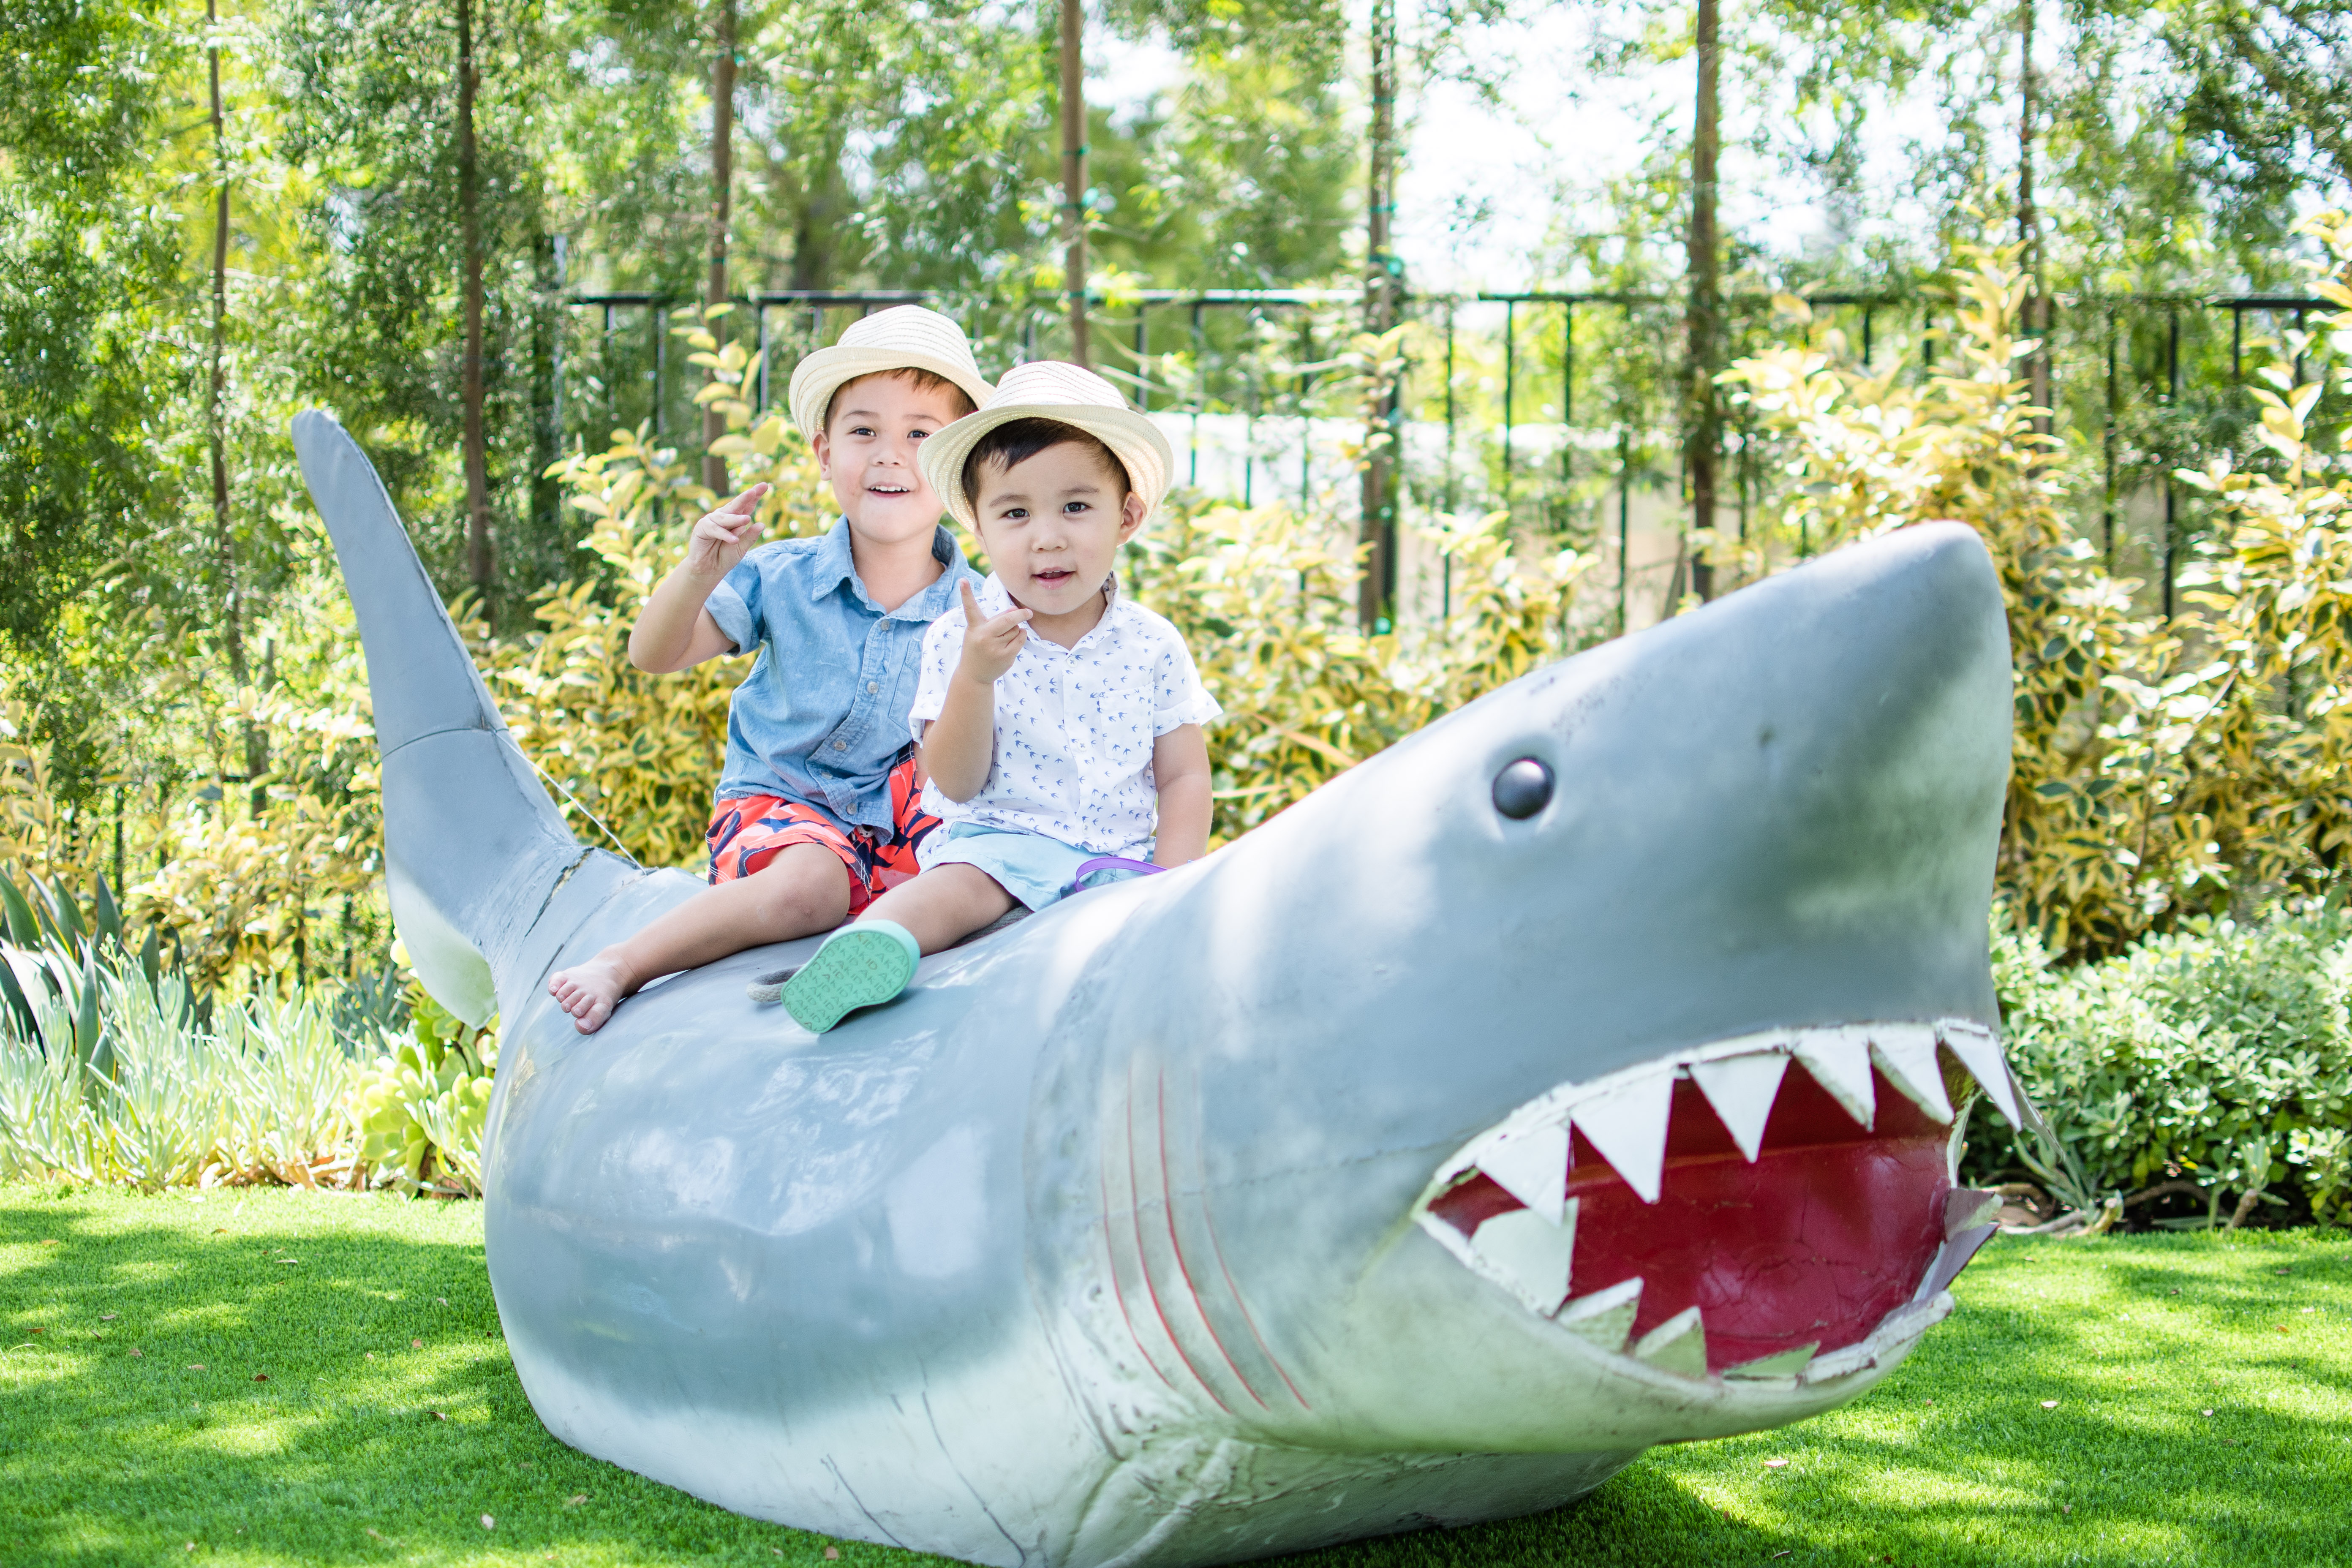 Shark Attack 4th Birthday Party - Wife of the Party